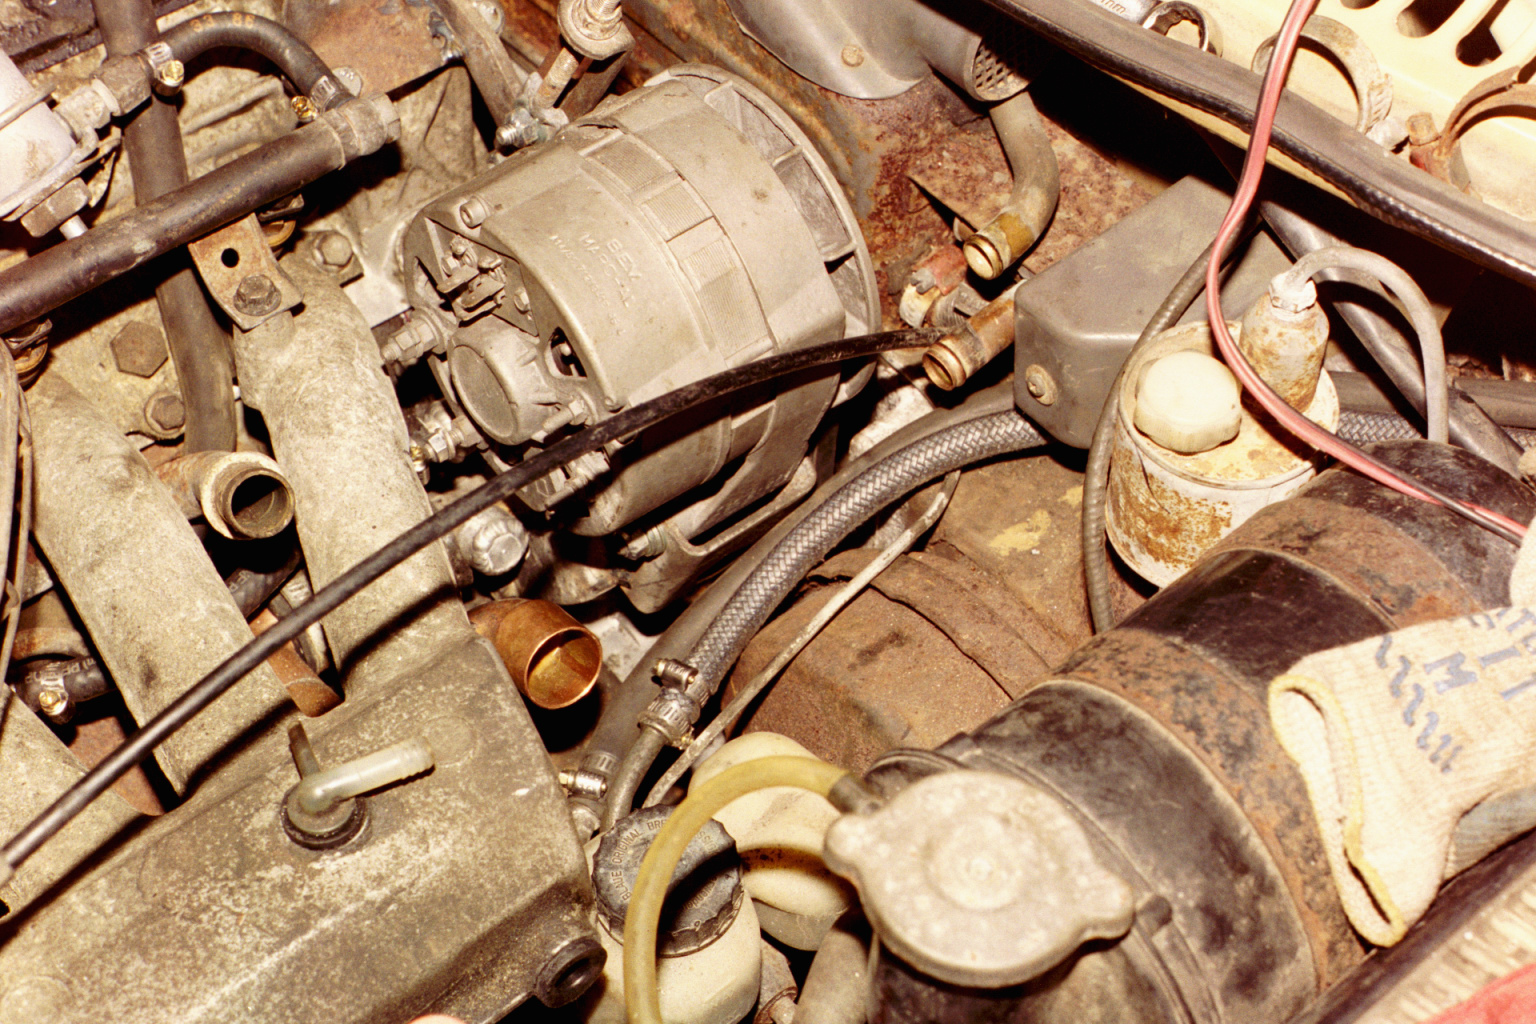 05 Oil Coolerheater Coolant Tank Plumbing Beckmannag Brown Engine The Junction Between Water Pump Inlet And Hose Is Soldered Up From Common Copper Fittings